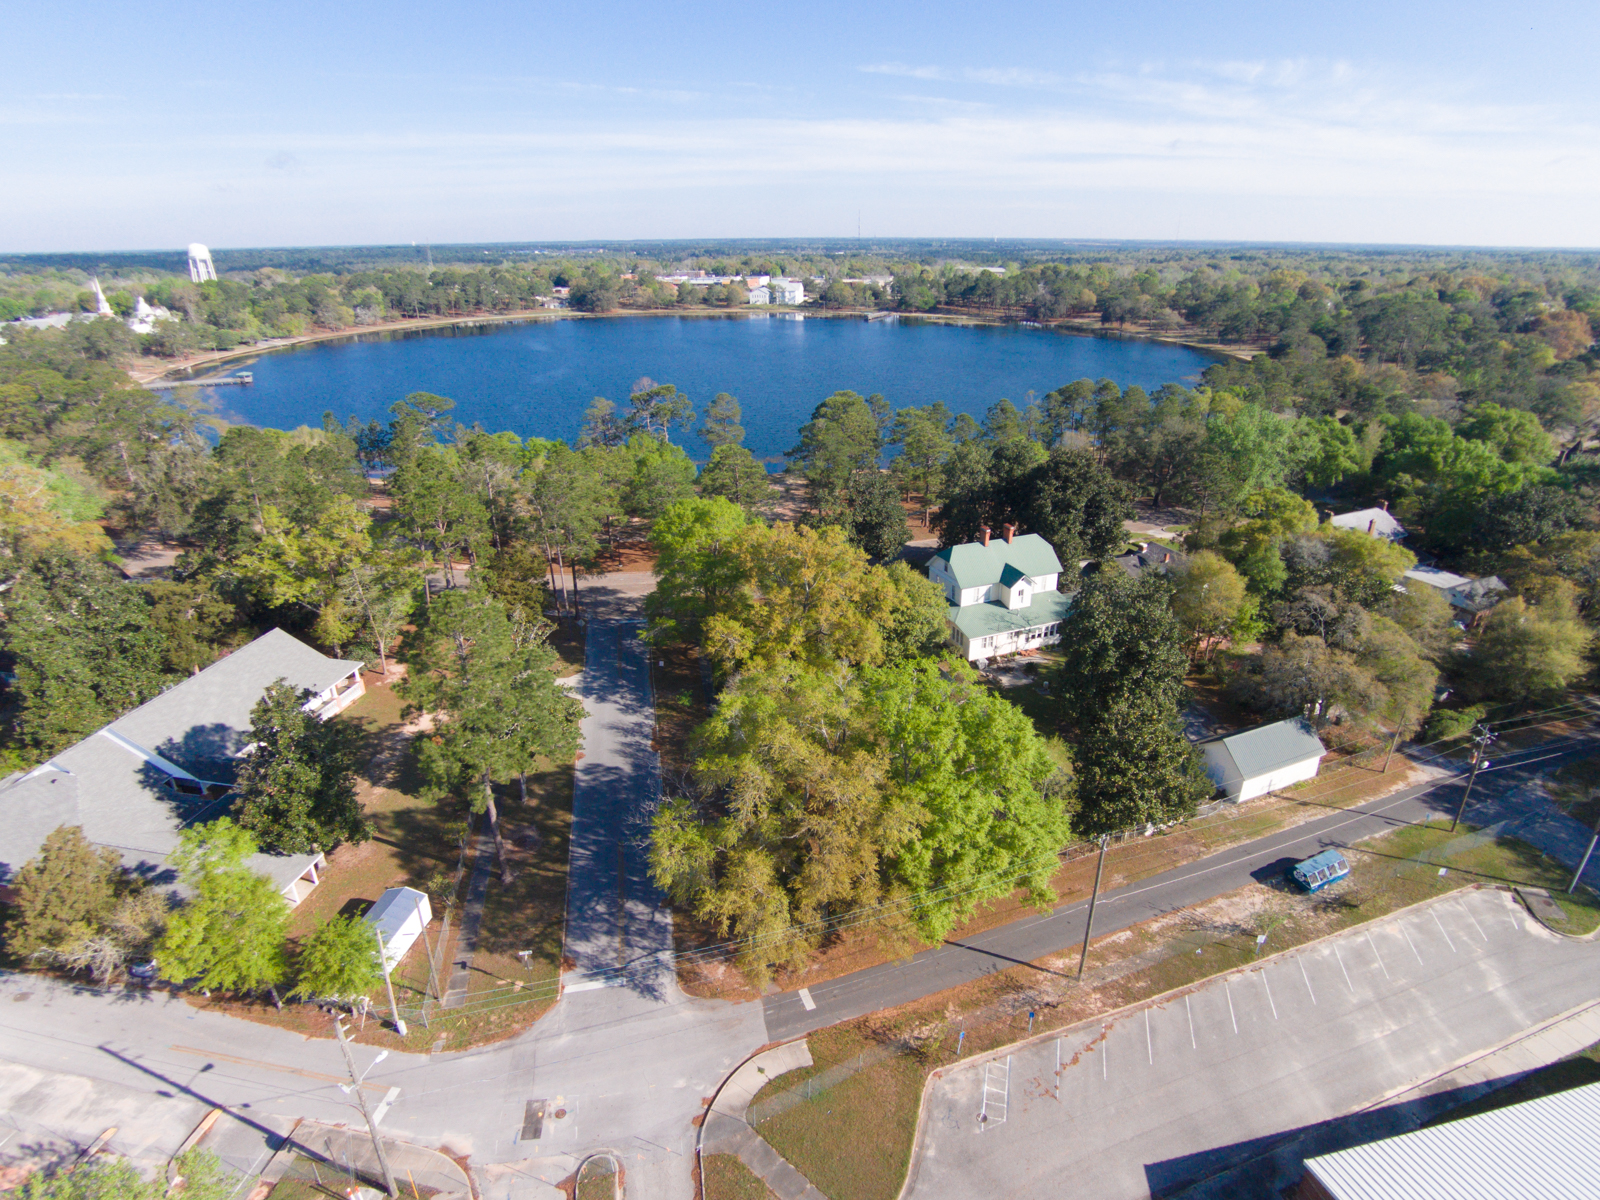 Đất đai vì Bán tại RARE LAKEFRONT LOT IN HISTORIC NEIGHBORHOOD 236 Circle Drive Defuniak Springs, Florida, 32435 Hoa Kỳ